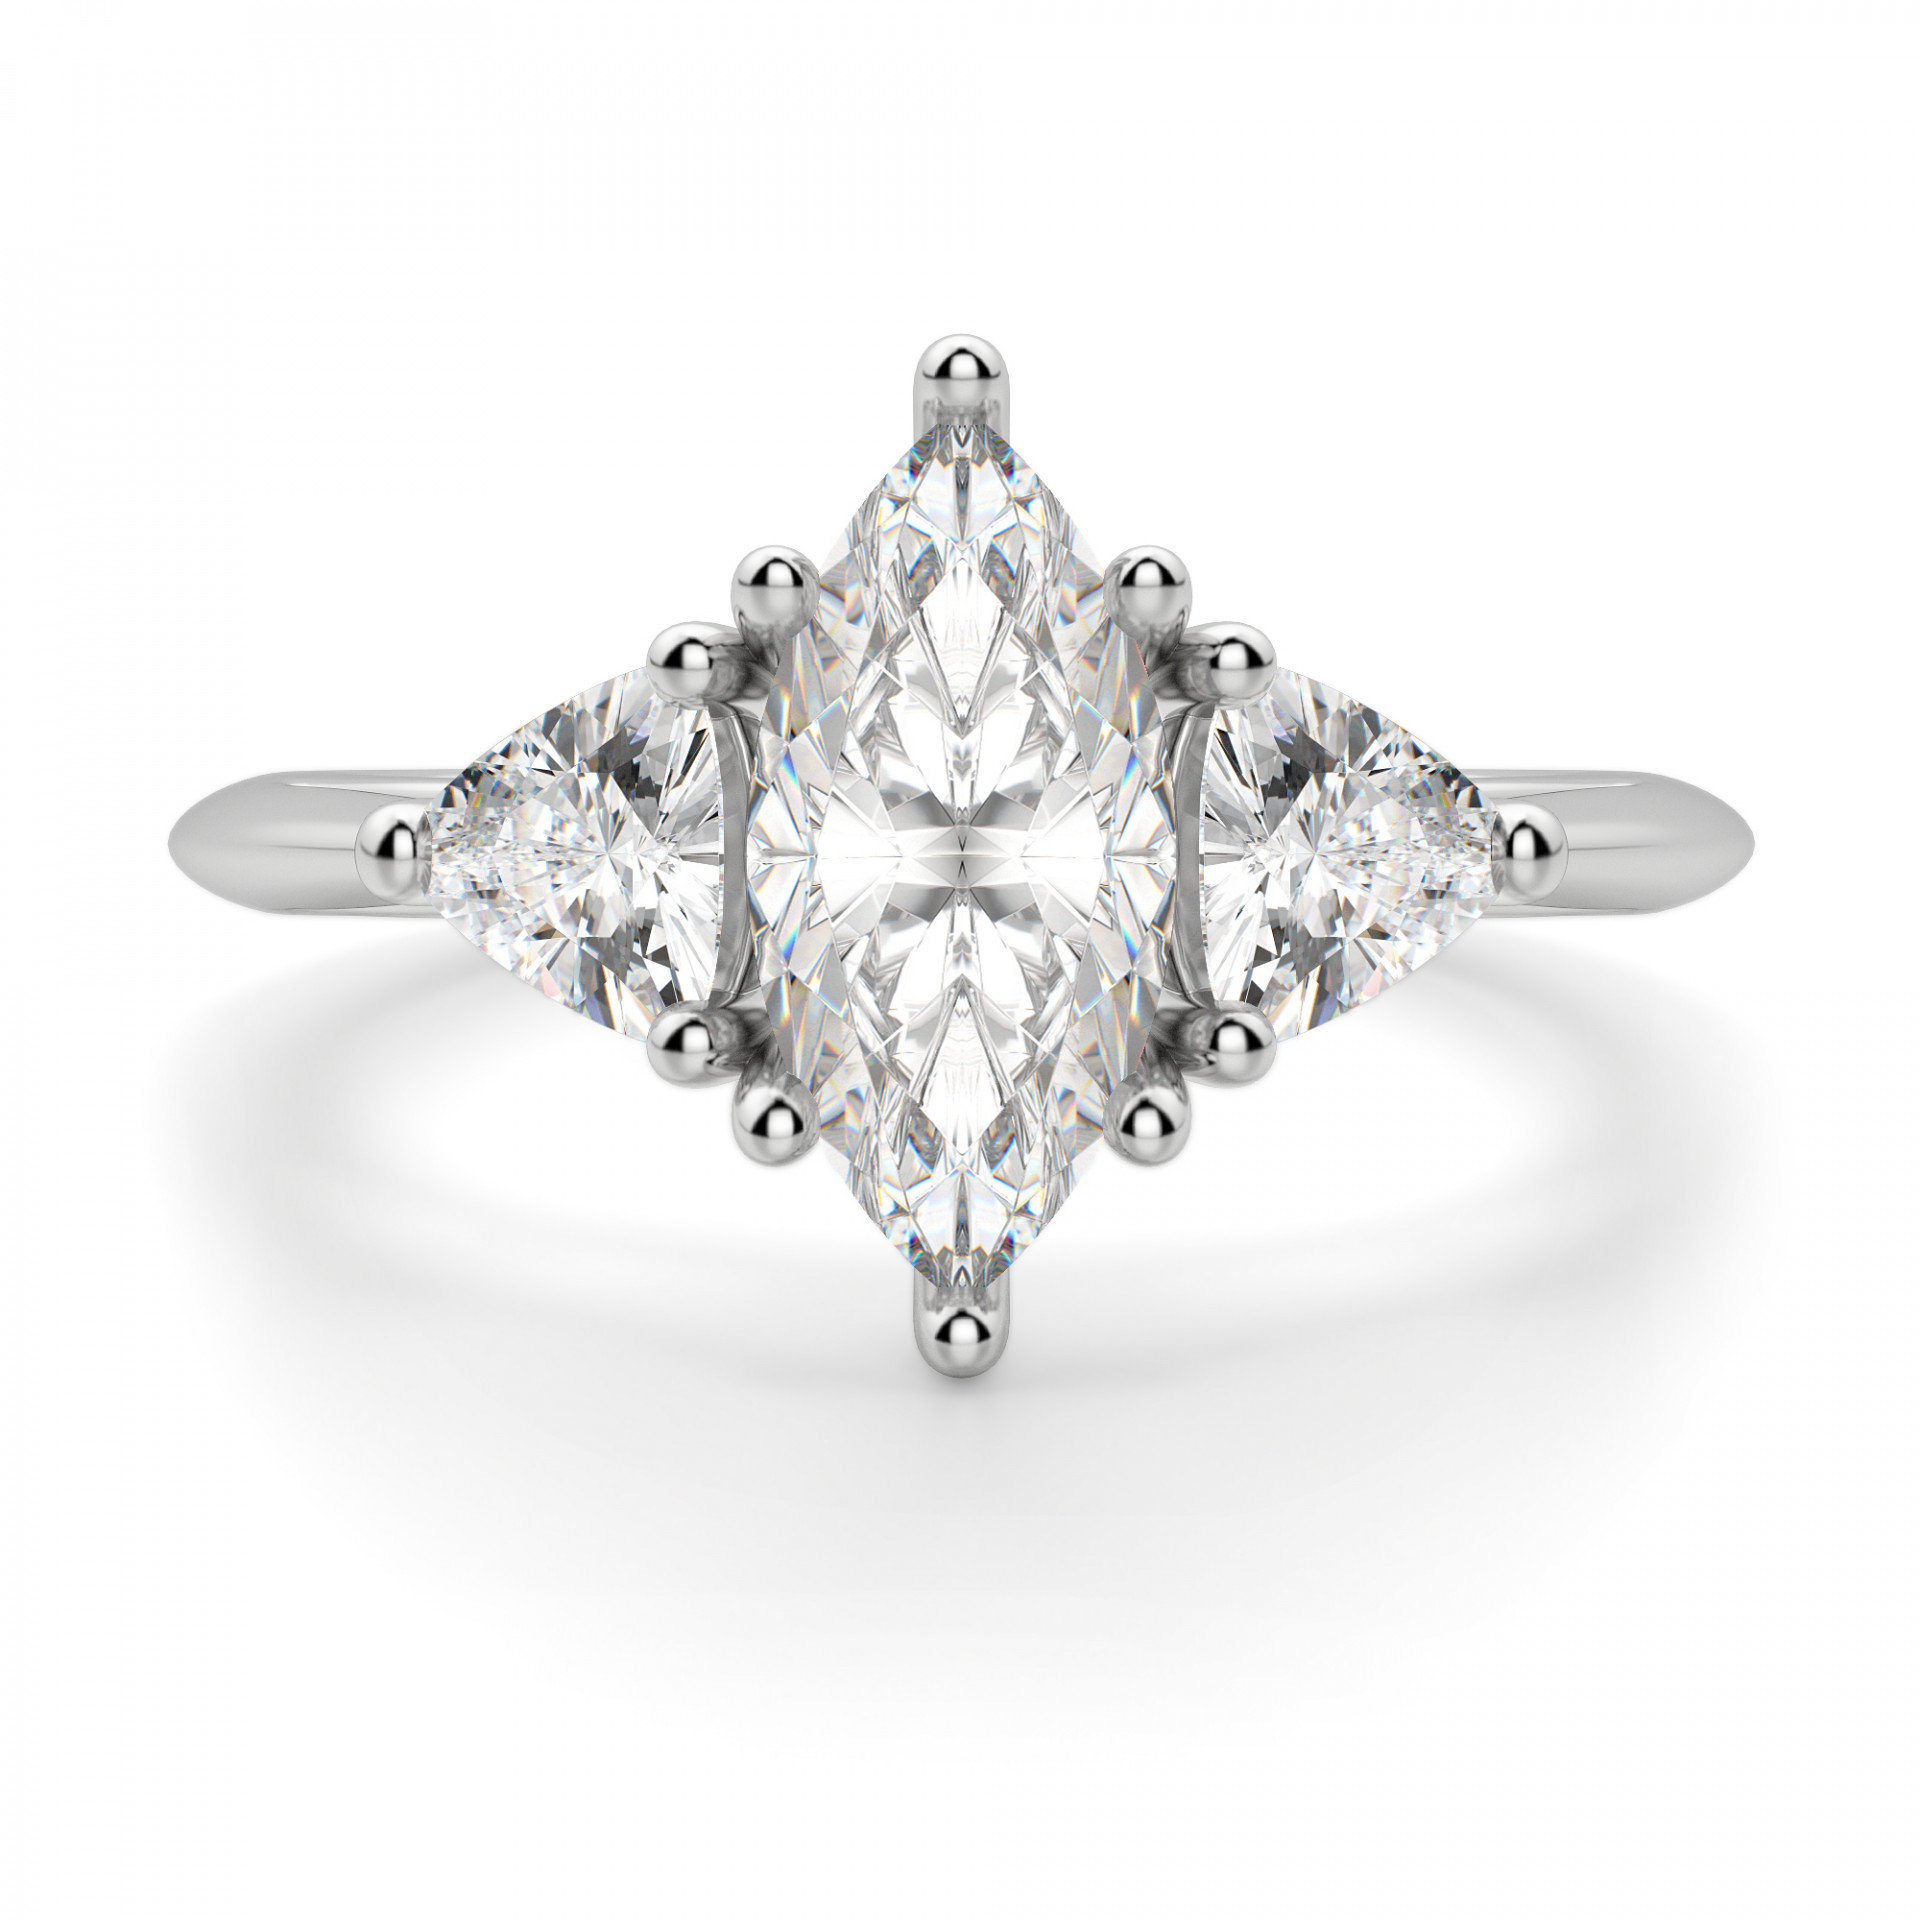 Engagement Rings Marquise: Timeless Marquise Cut Engagement Ring